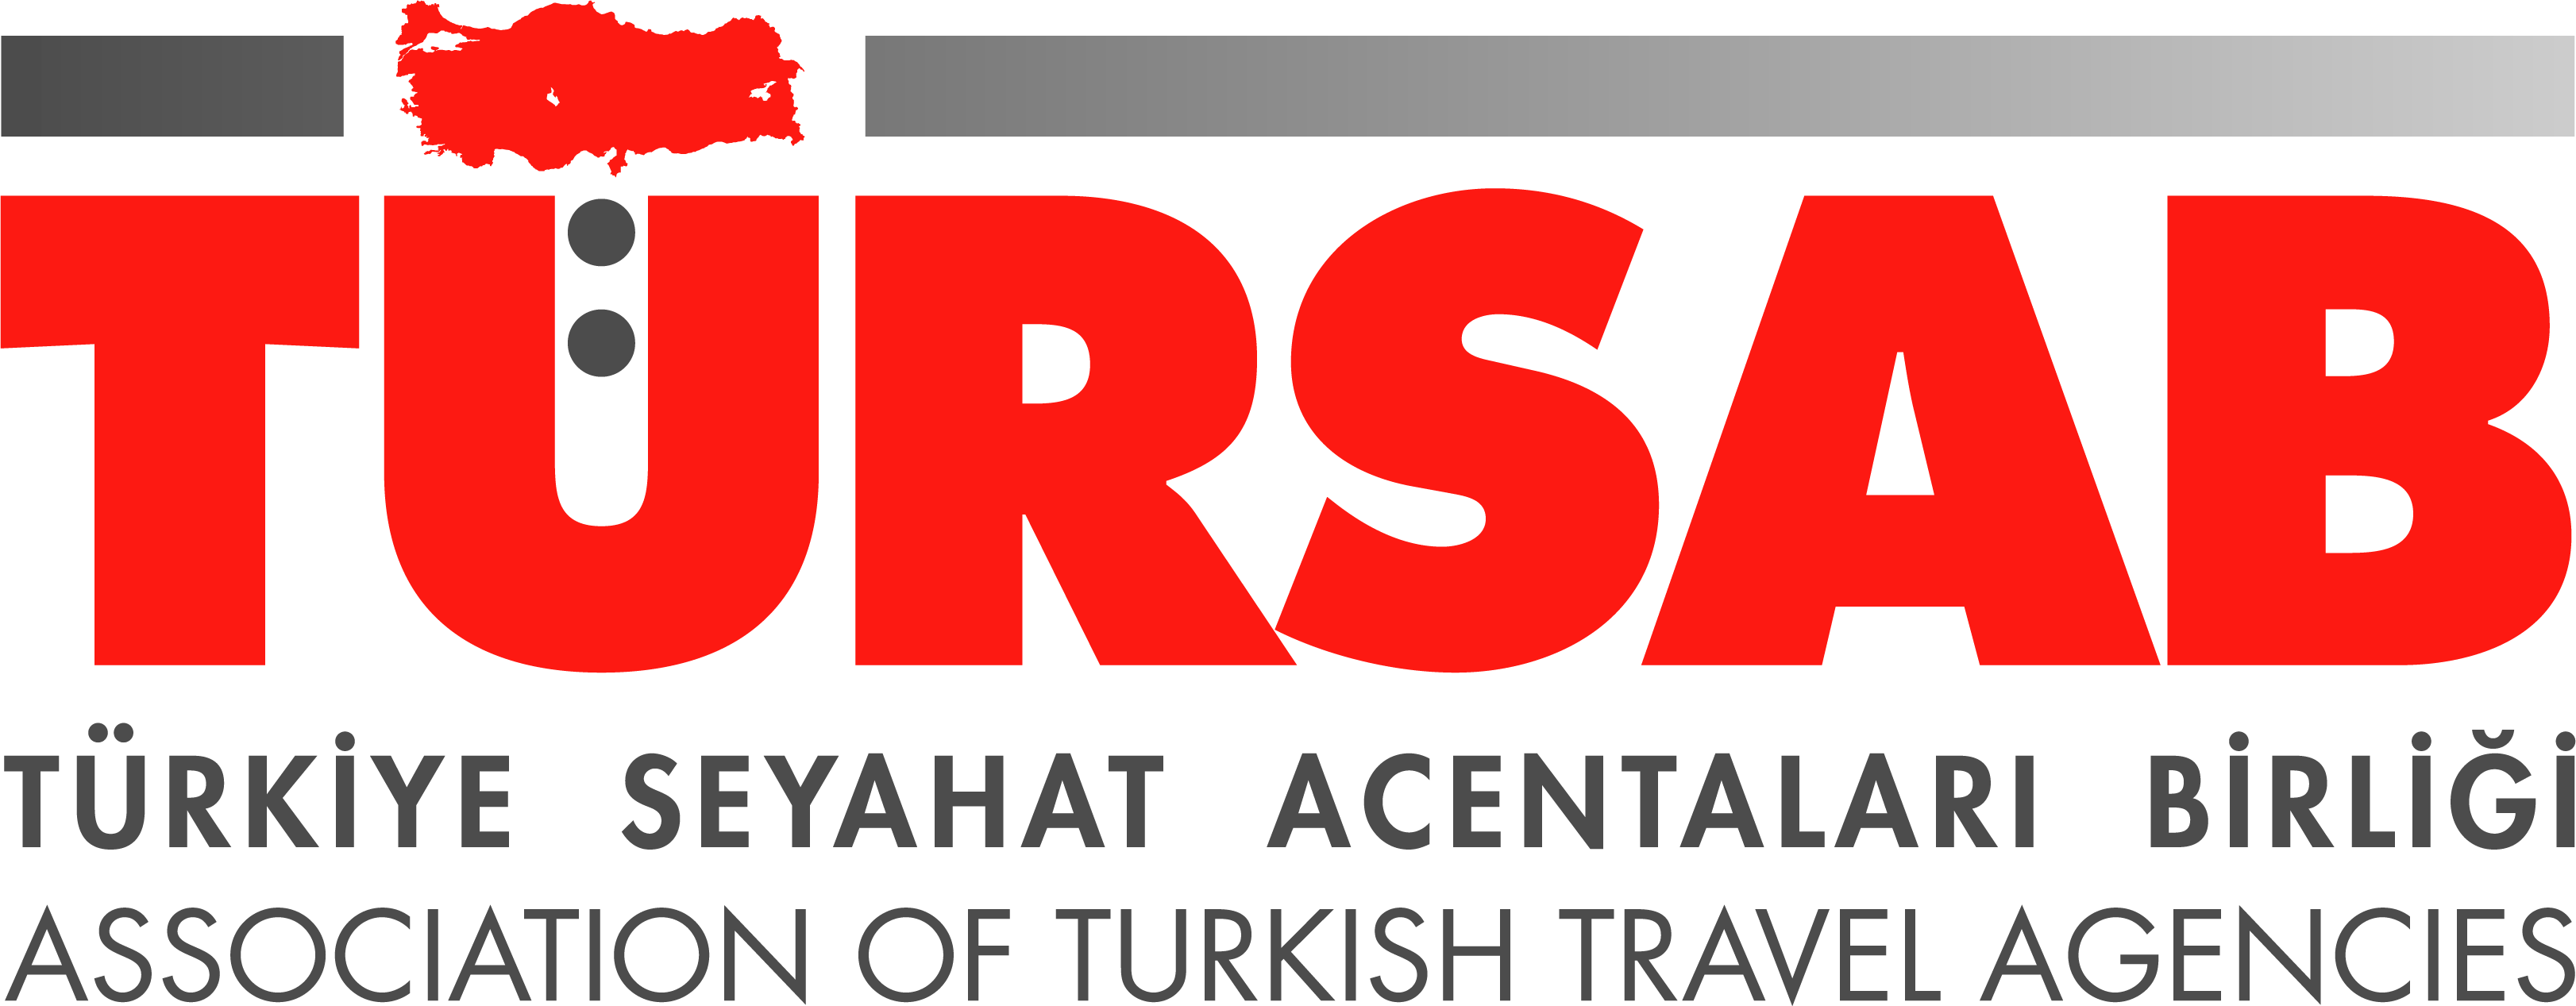 https://suledental.com/wp-content/uploads/2021/01/YENI-TURSAB-LOGO.png